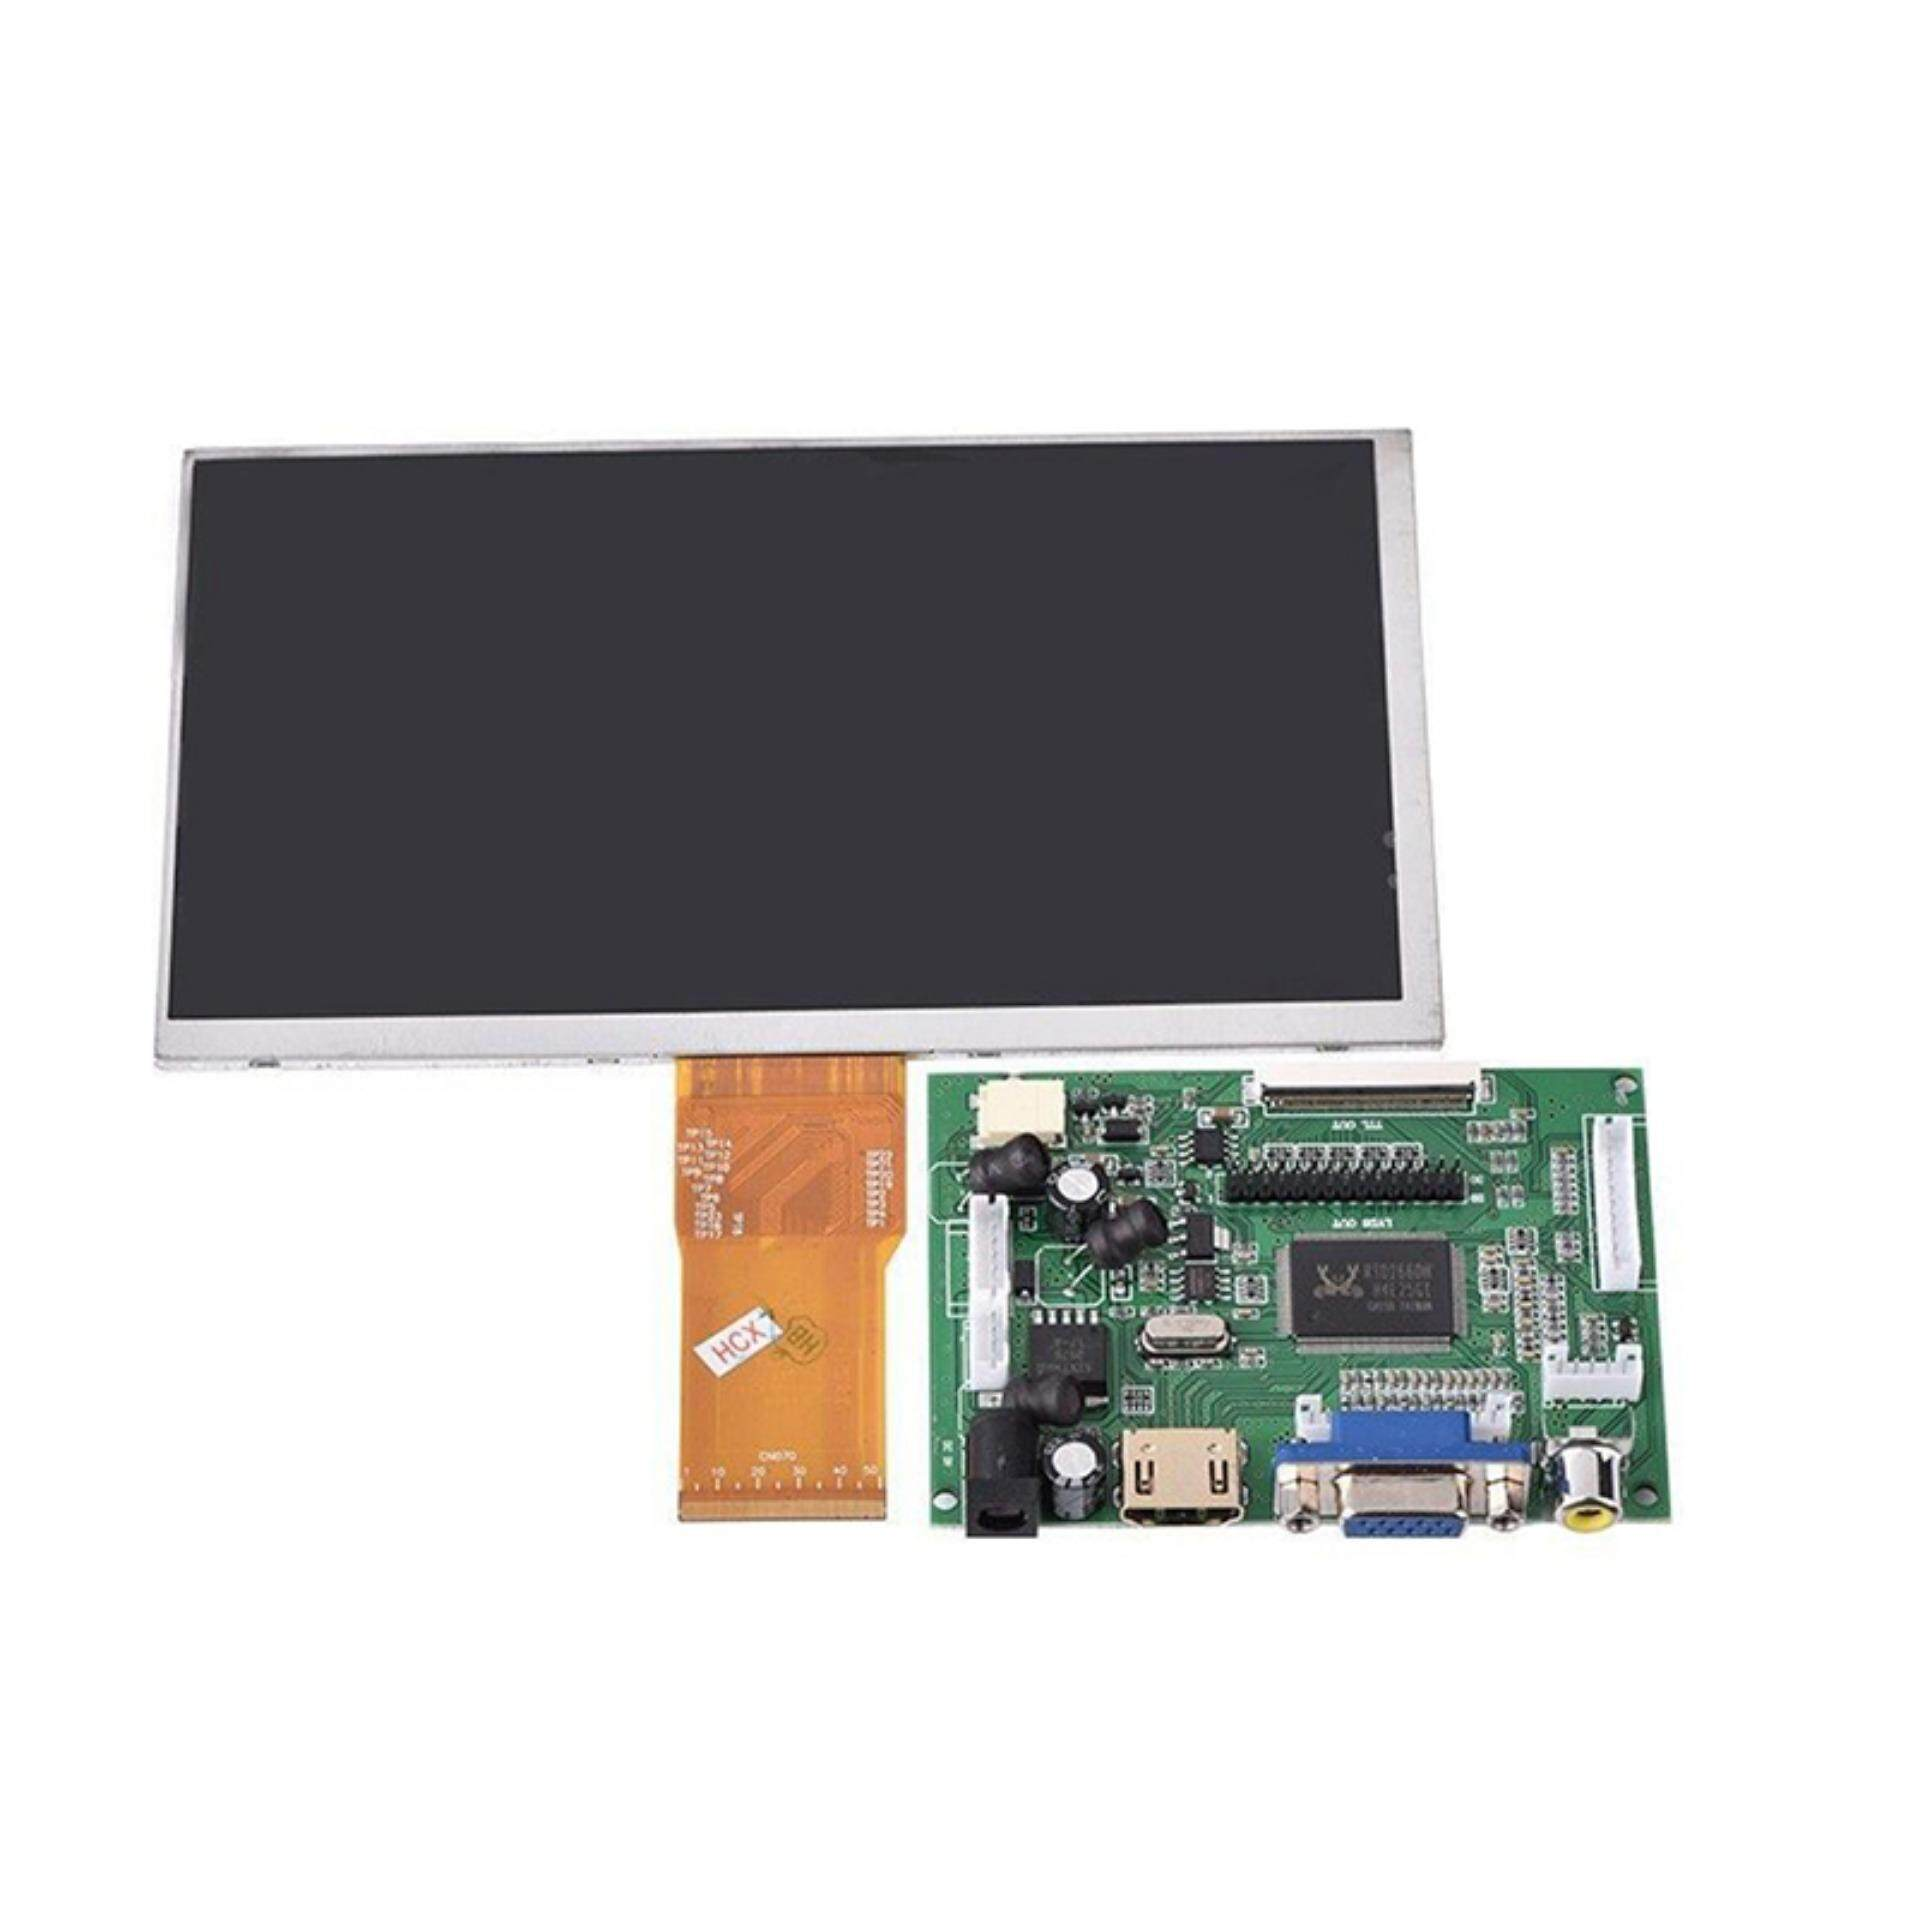 7 Inch LCD Screen Display Monitor For Raspberry Pi + Driver Board HDMI/VGA/2AV + 10 Pins Cable - intl